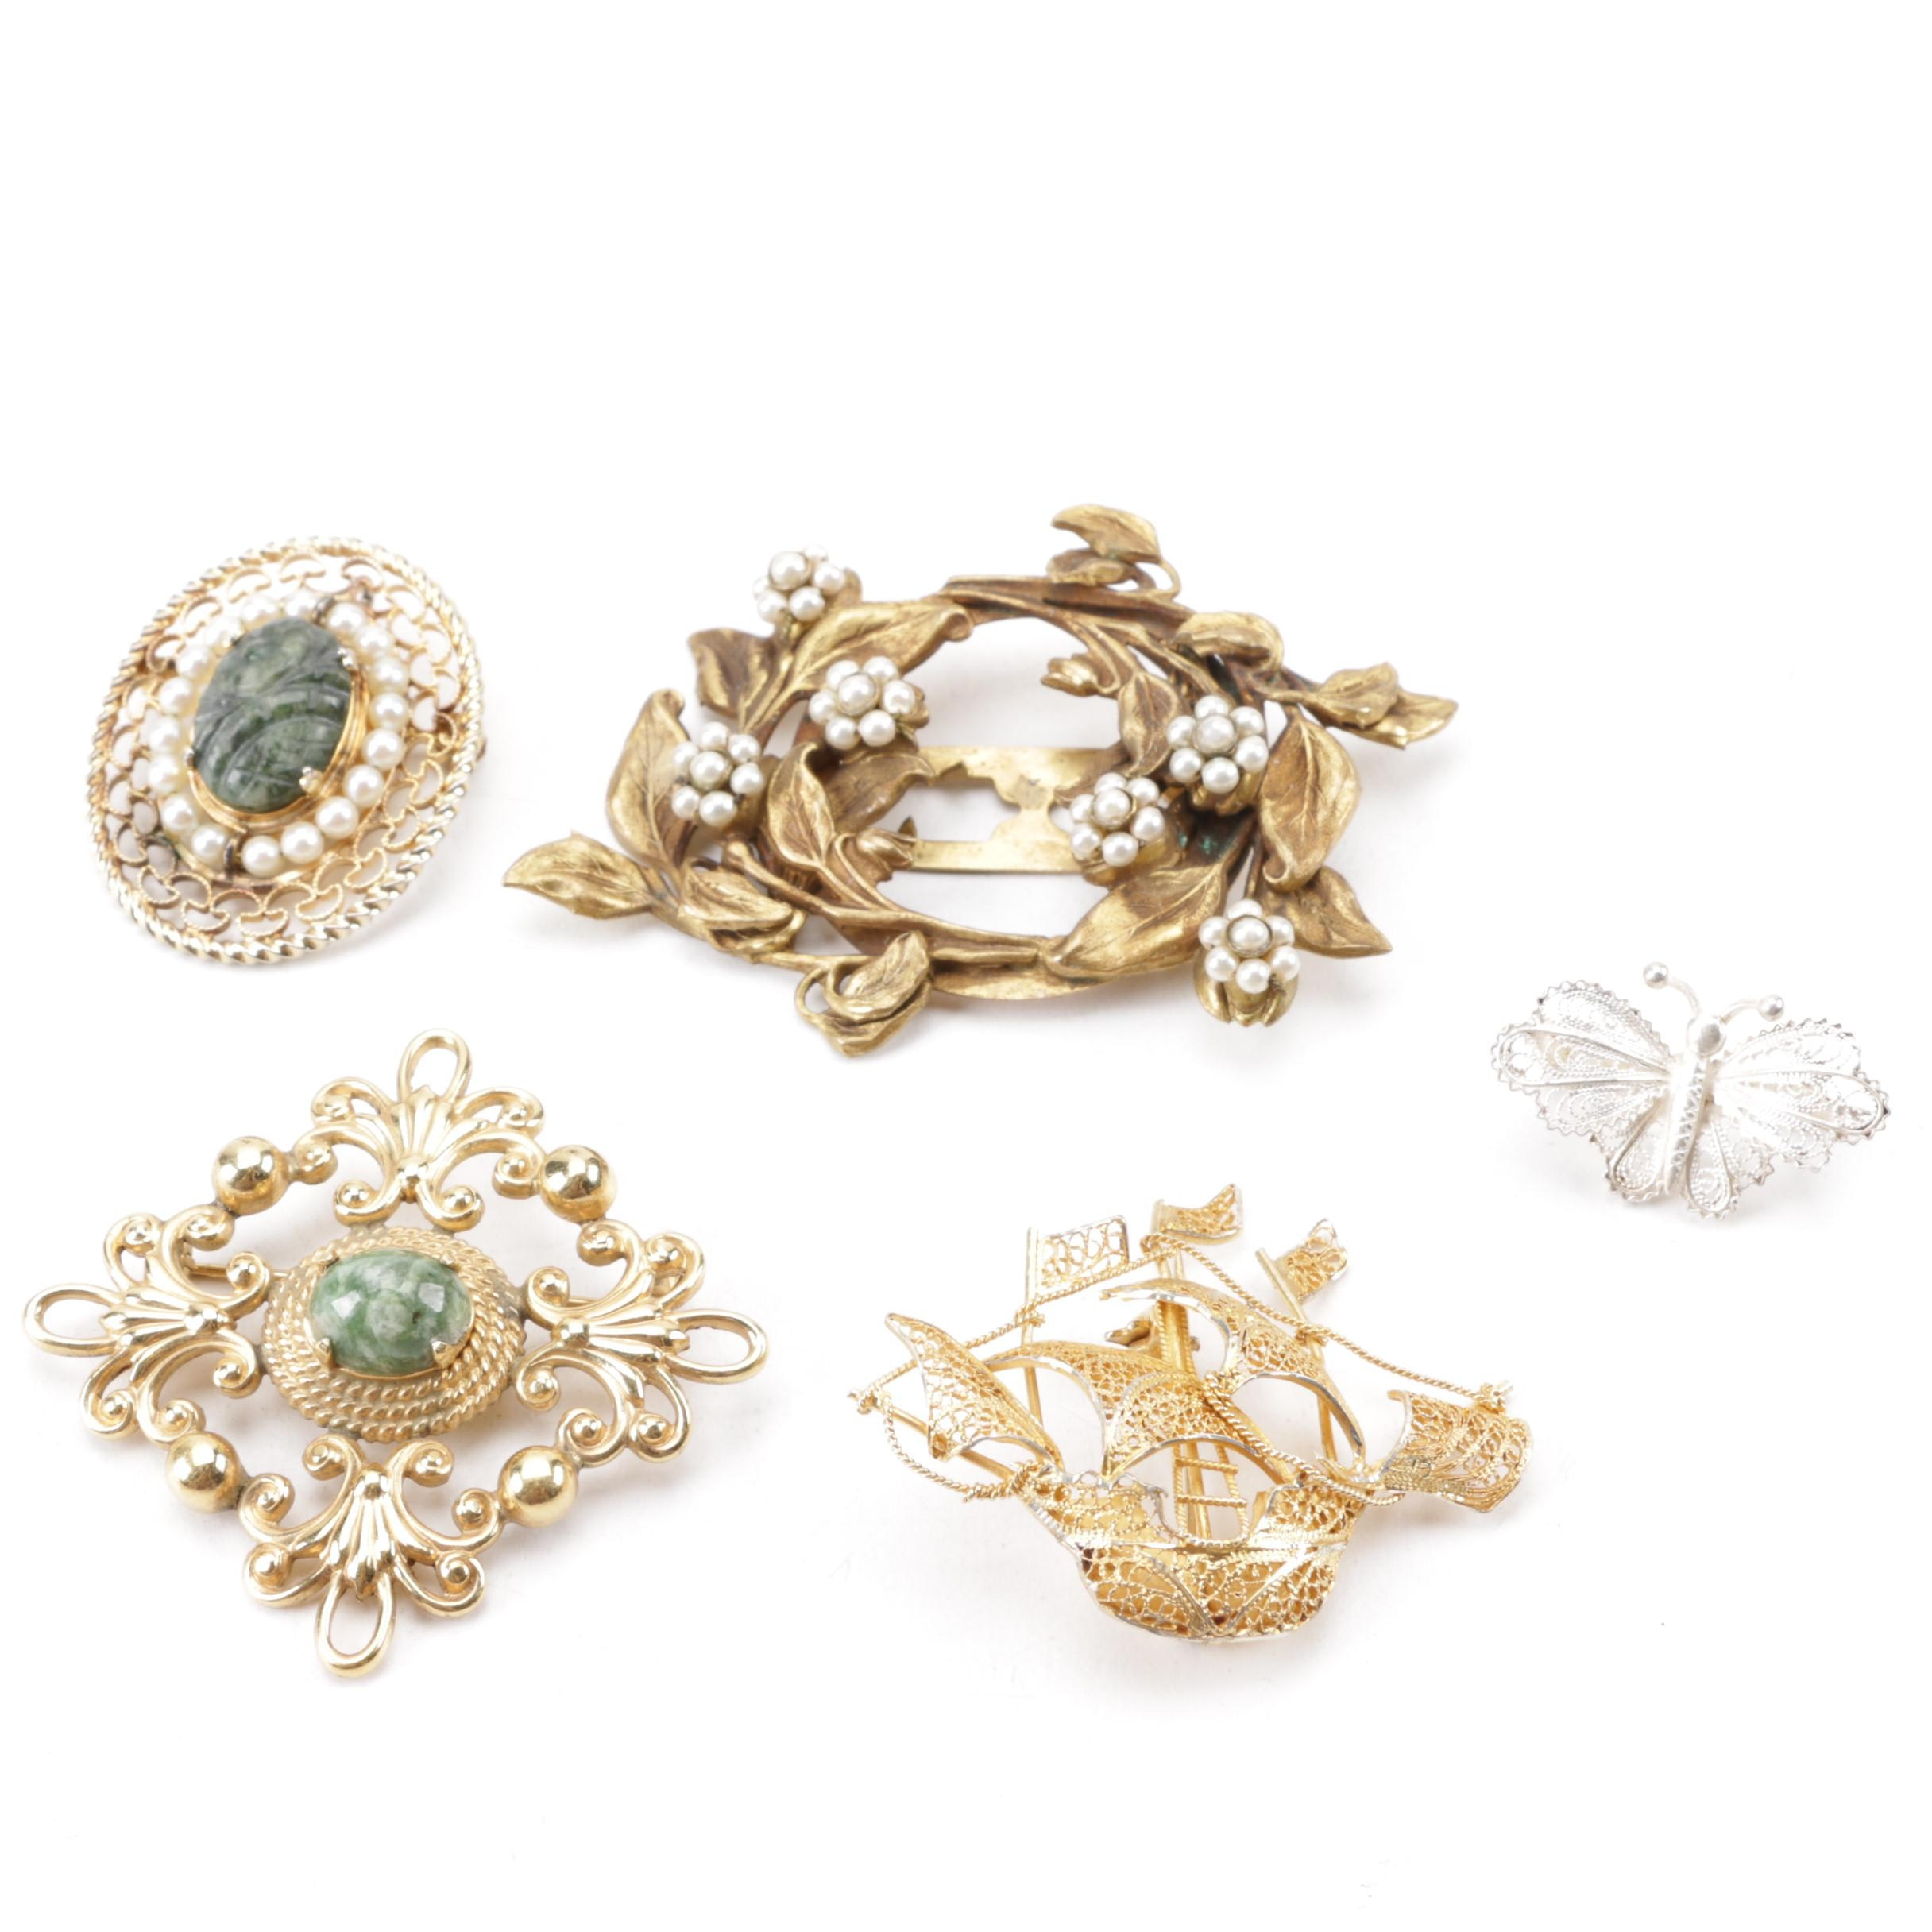 Vintage Sterling, 800 Silver and Gold Filled Brooches